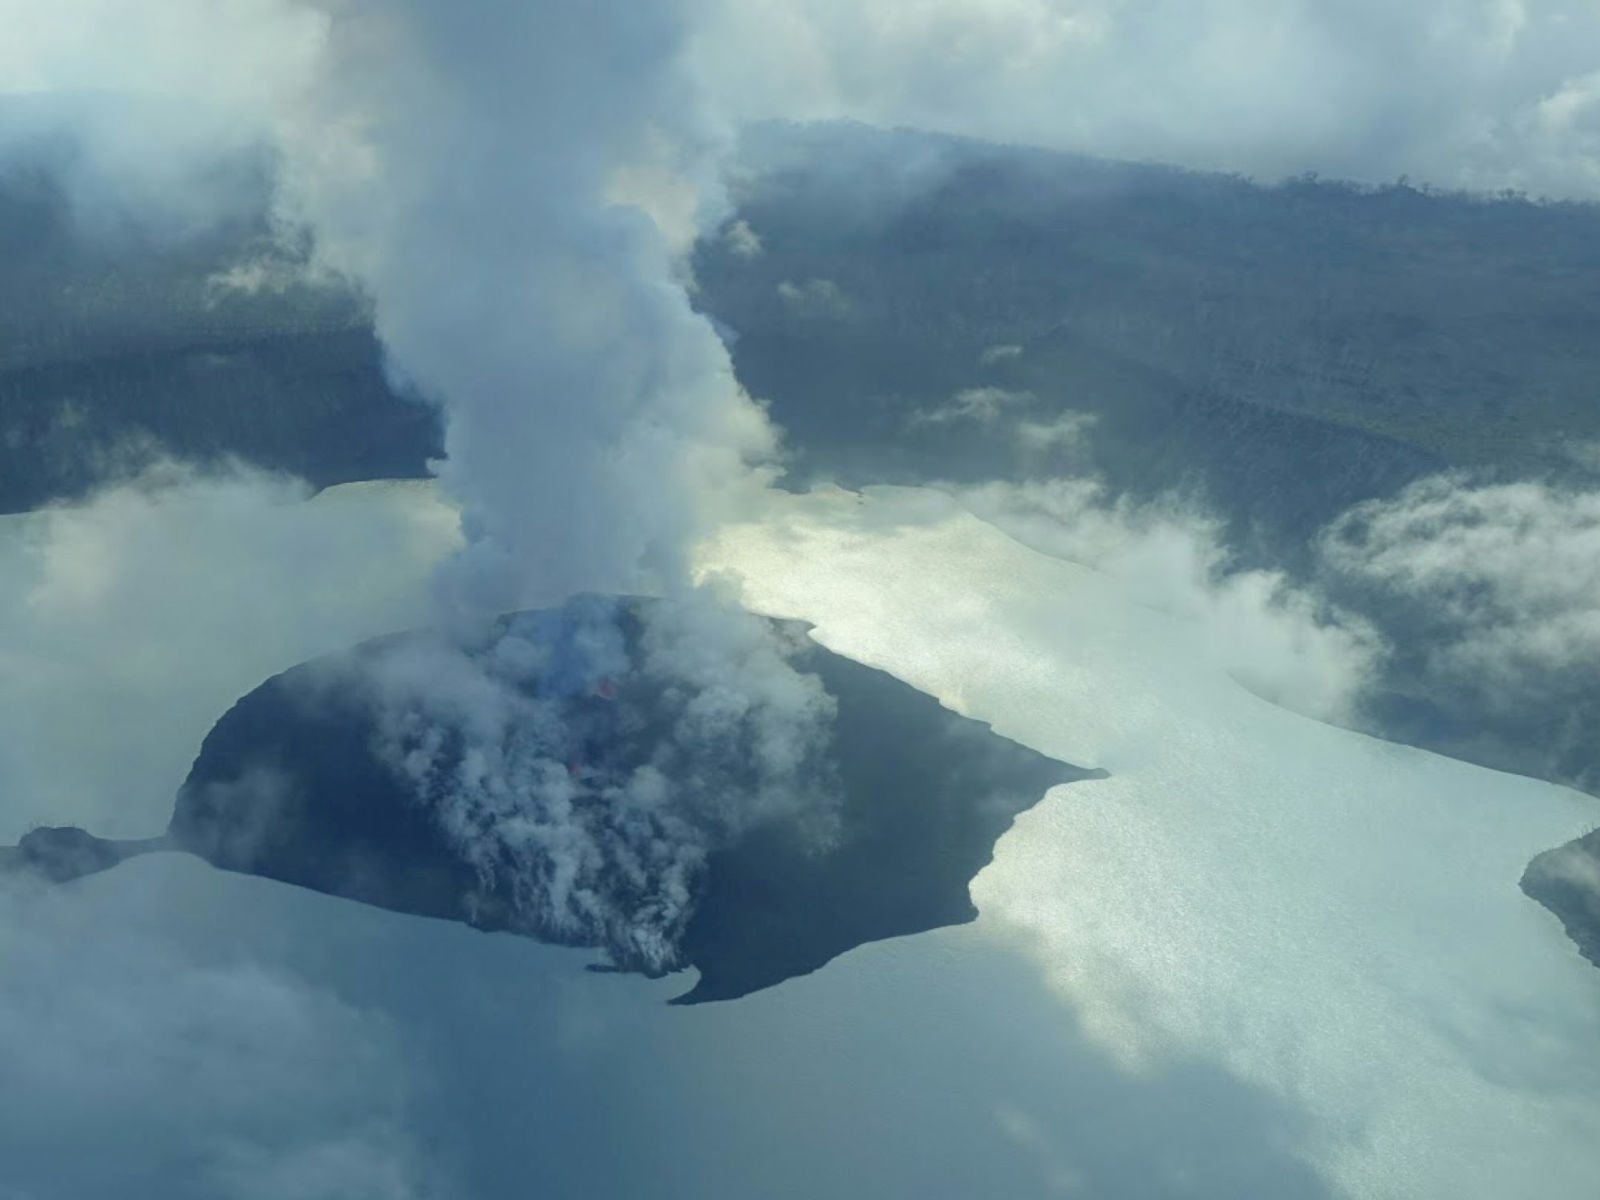 A cloud of smoke from Manaro Voui volcano is seen on Vanuatu's northern island Ambae in the South Pacific, September 25, 2017 in this aerial picture. COURTESY THOMAS BOYER, VOLCANOLOGIST via REUTERS THIS IMAGE HAS BEEN SUPPLIED BY A THIRD PARTY. MANDATORY CREDIT. NO RESALES. NO ARCHIVES - RC1374EF90A0